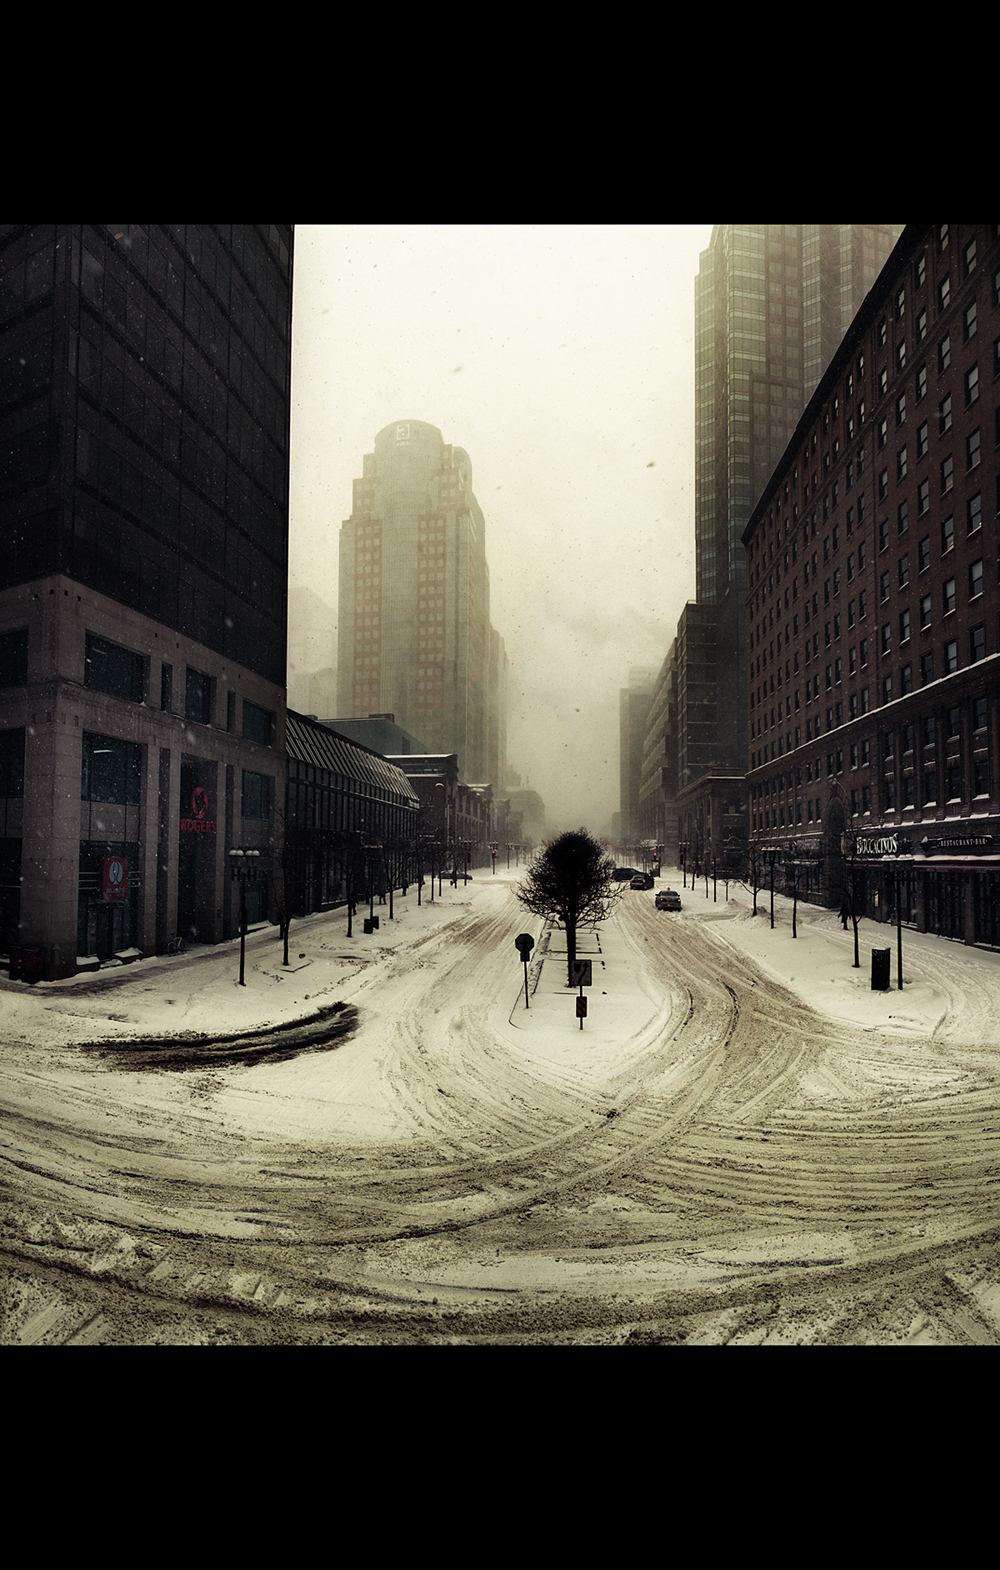 """Montreal """"early sunday morning"""" """"julien coquentin"""" Quebec Canada Street rain seasons winter snow autumn city"""